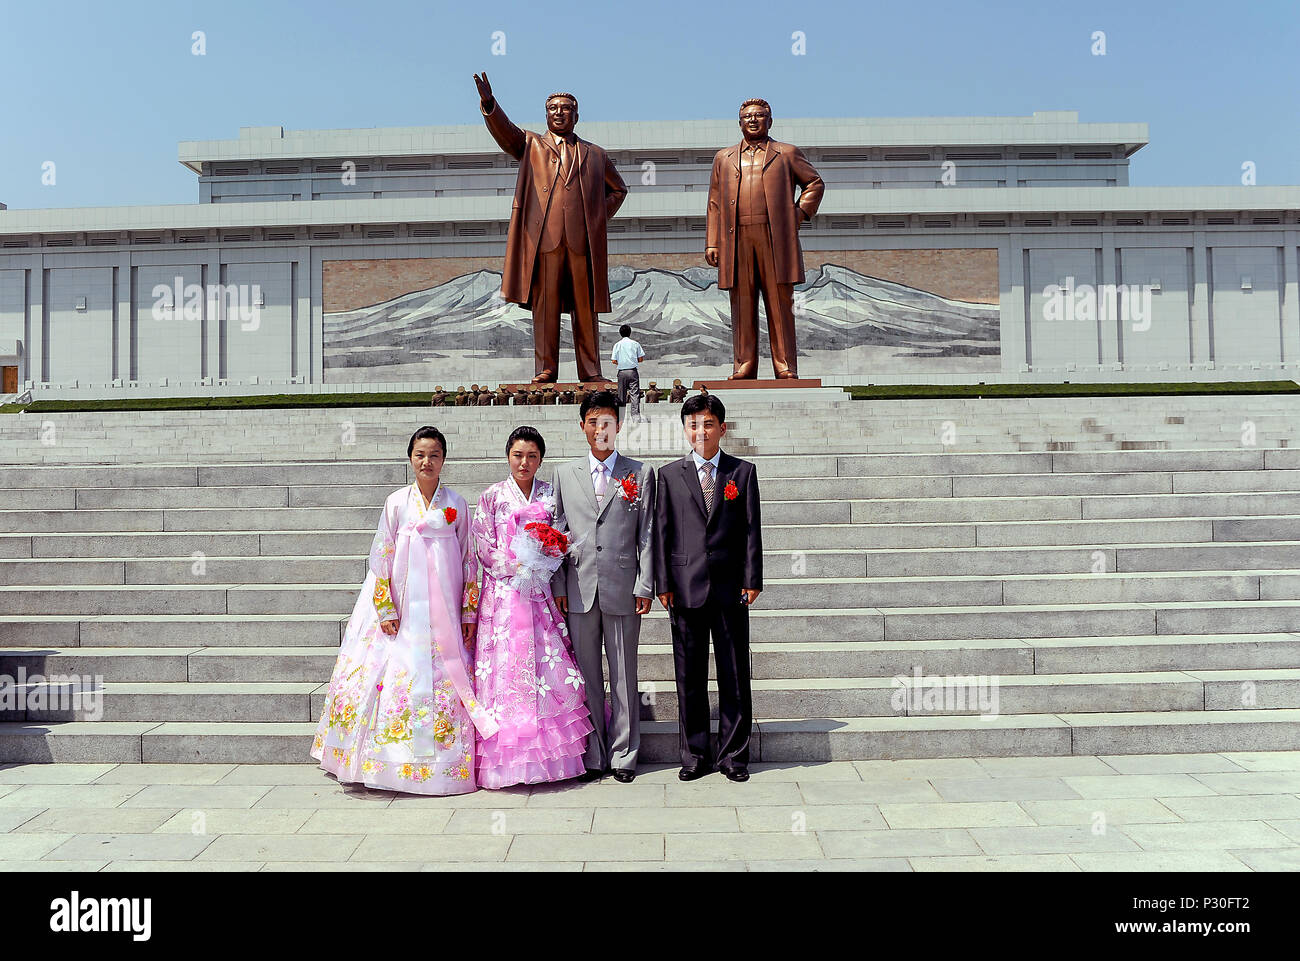 Pyongyang, North Korea, wedding parades have pictures taken at the Grossmonument Mansudae - Stock Image